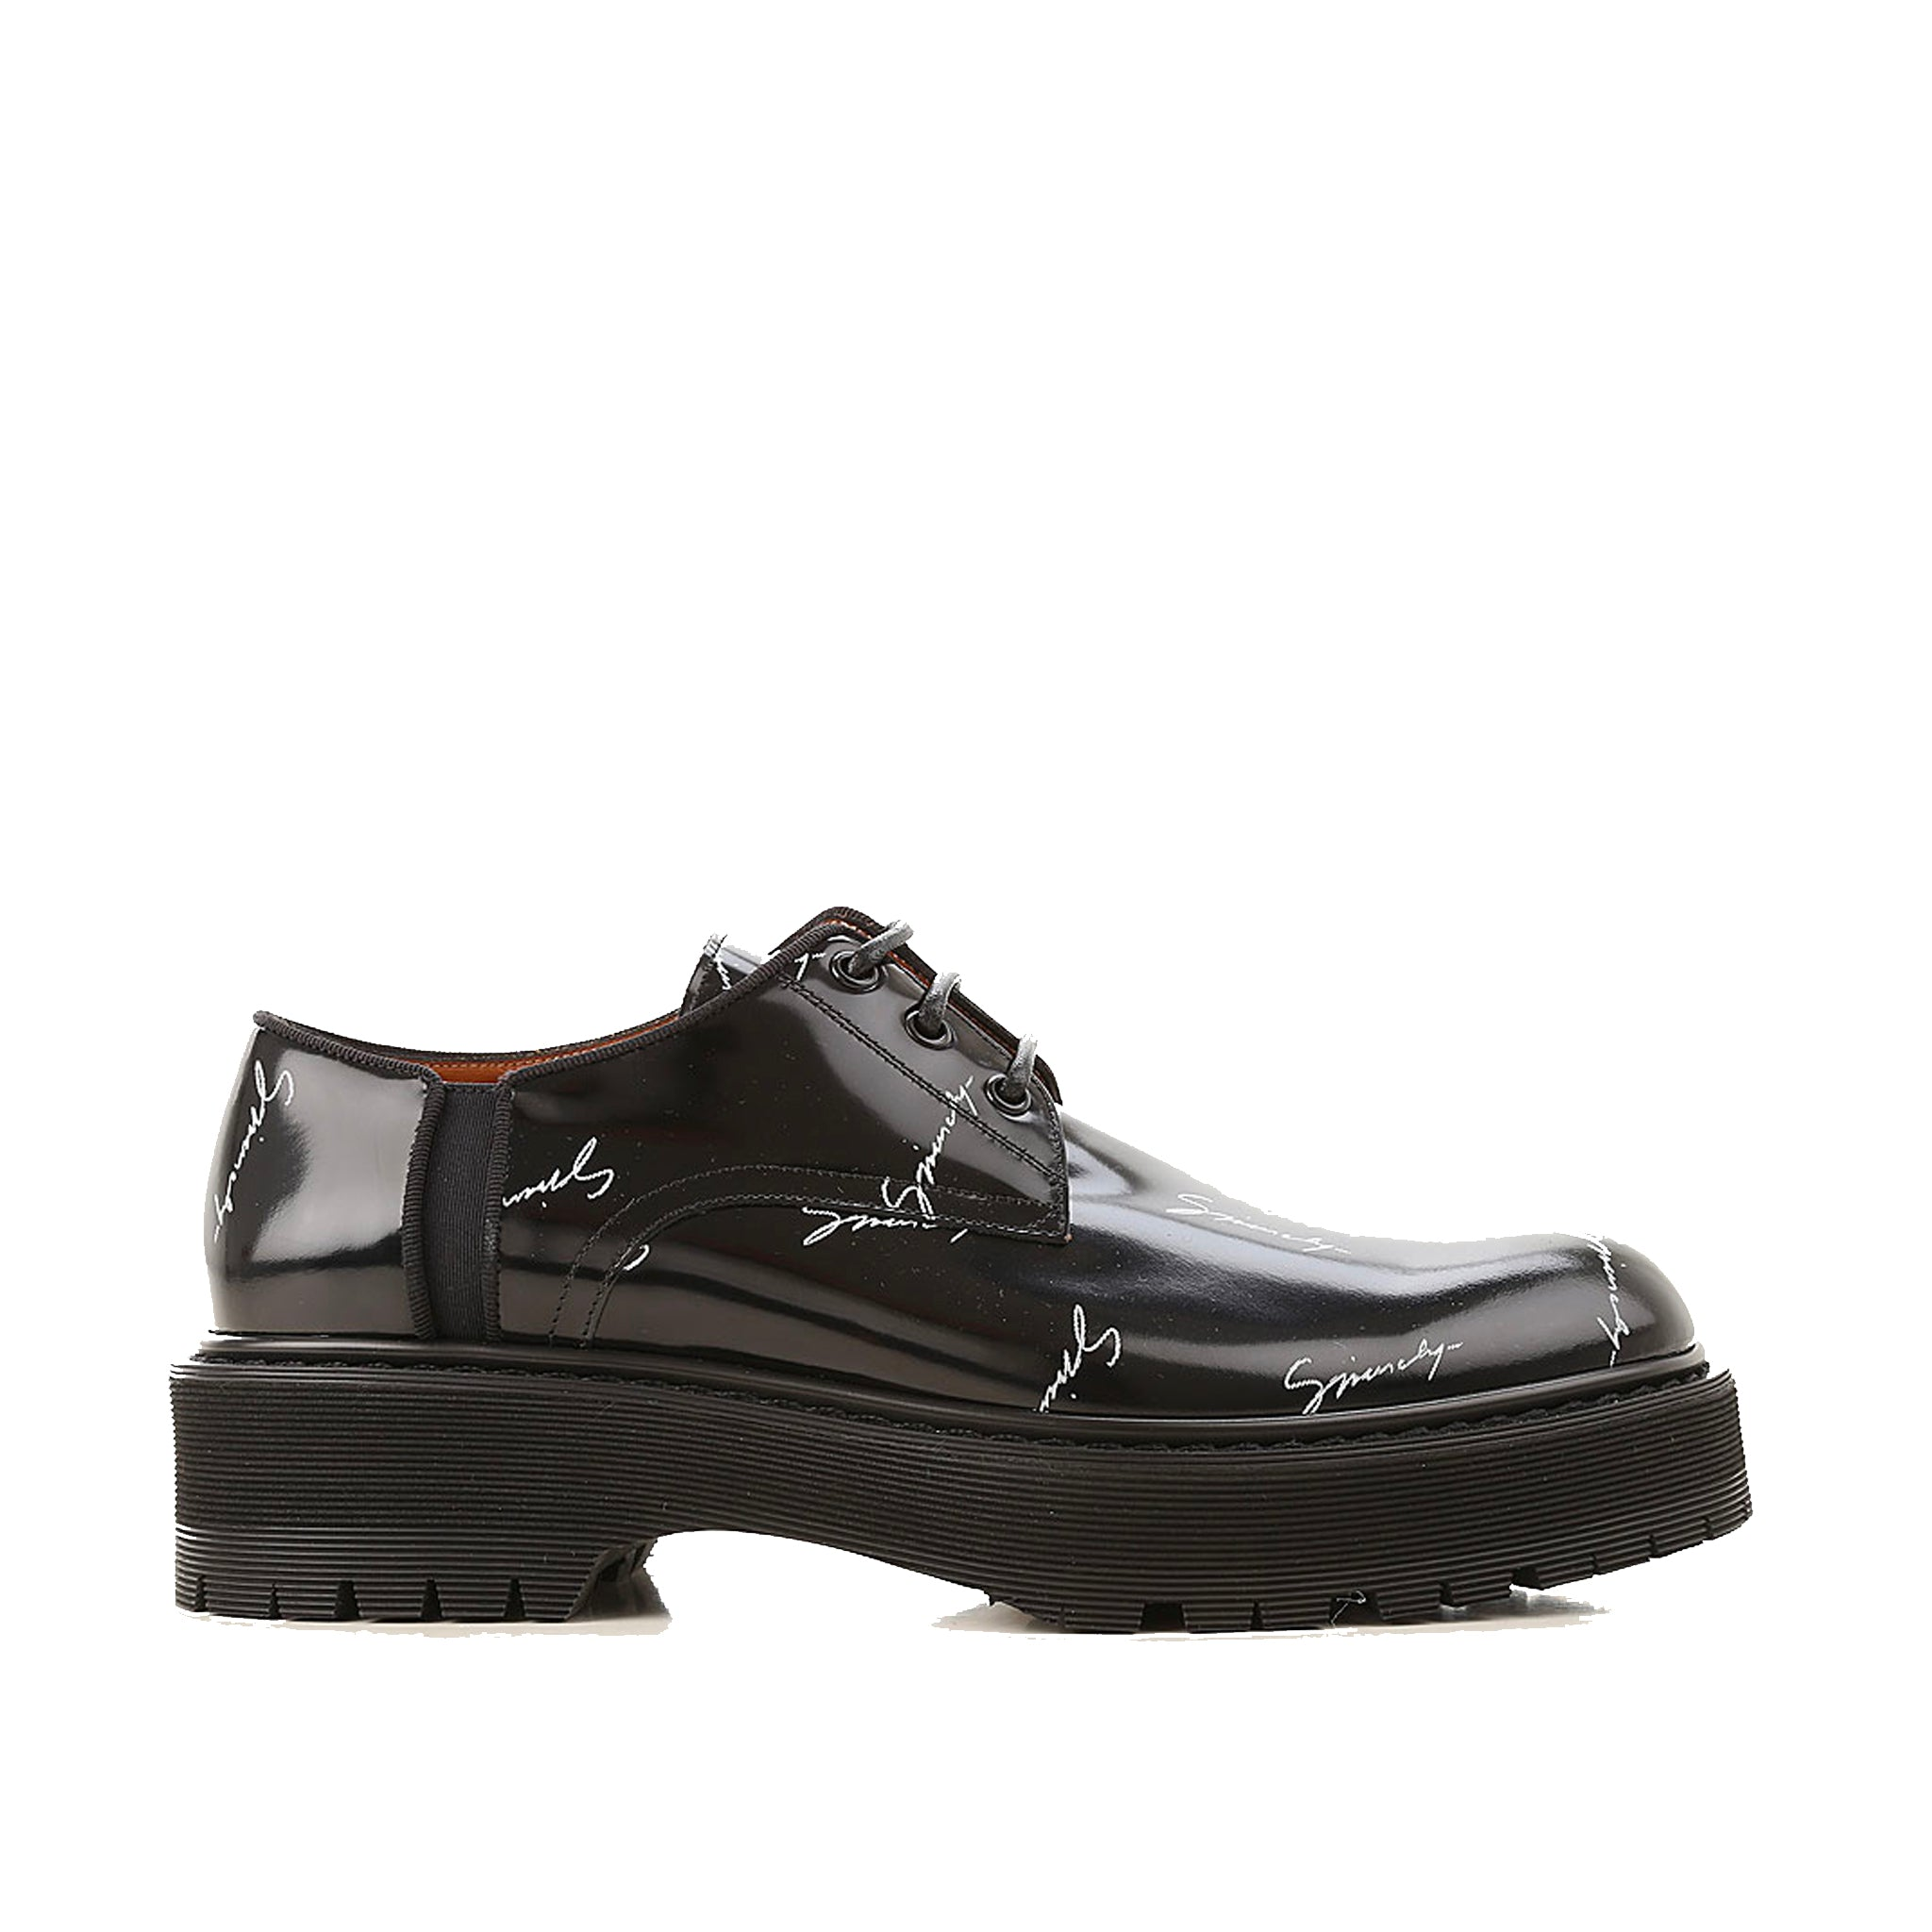 Givenchy All Over Signature Derby Shoes